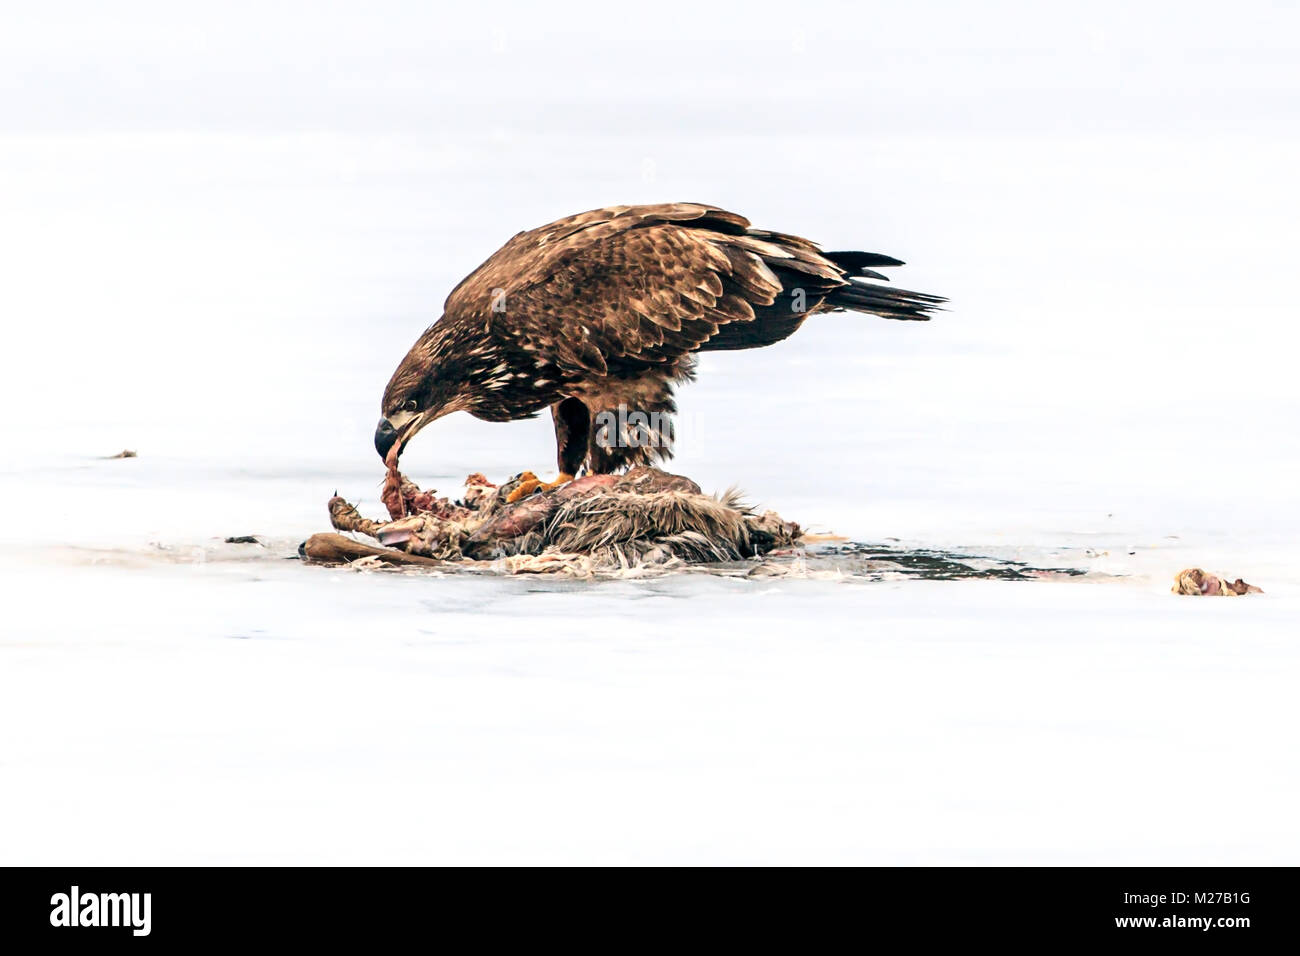 Young bald eagle tears meat from carcass on the froze Hauser Lake in Idaho. - Stock Image